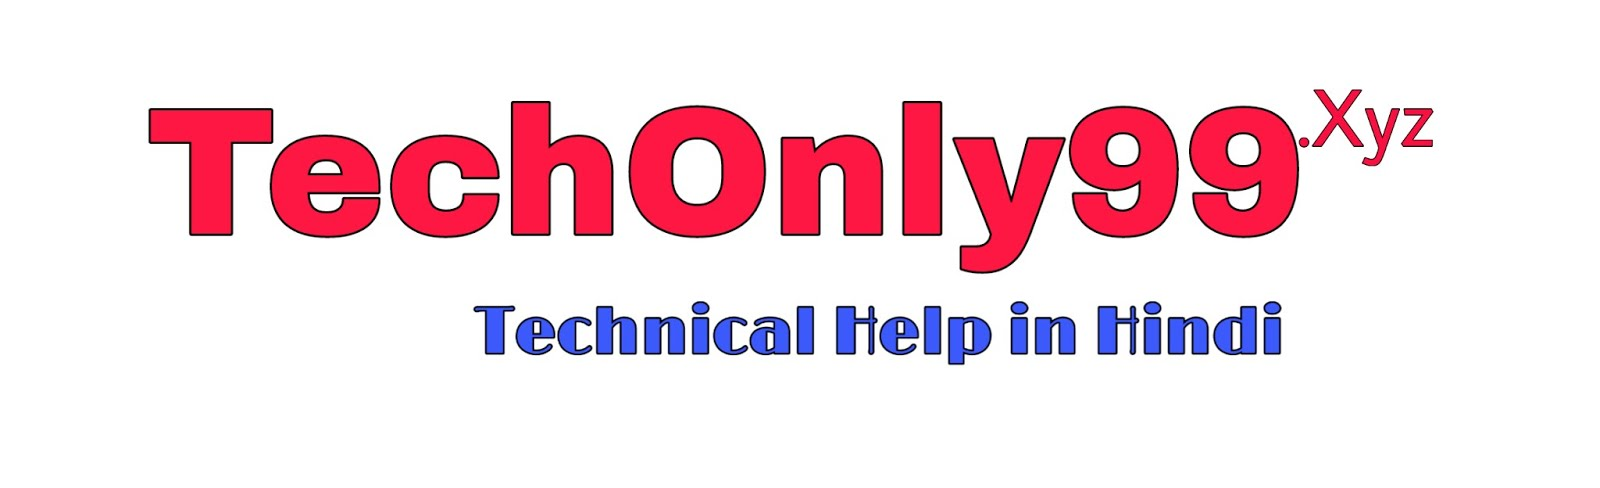 TechOnly99 - Technical help | Technical support, Technology Tips